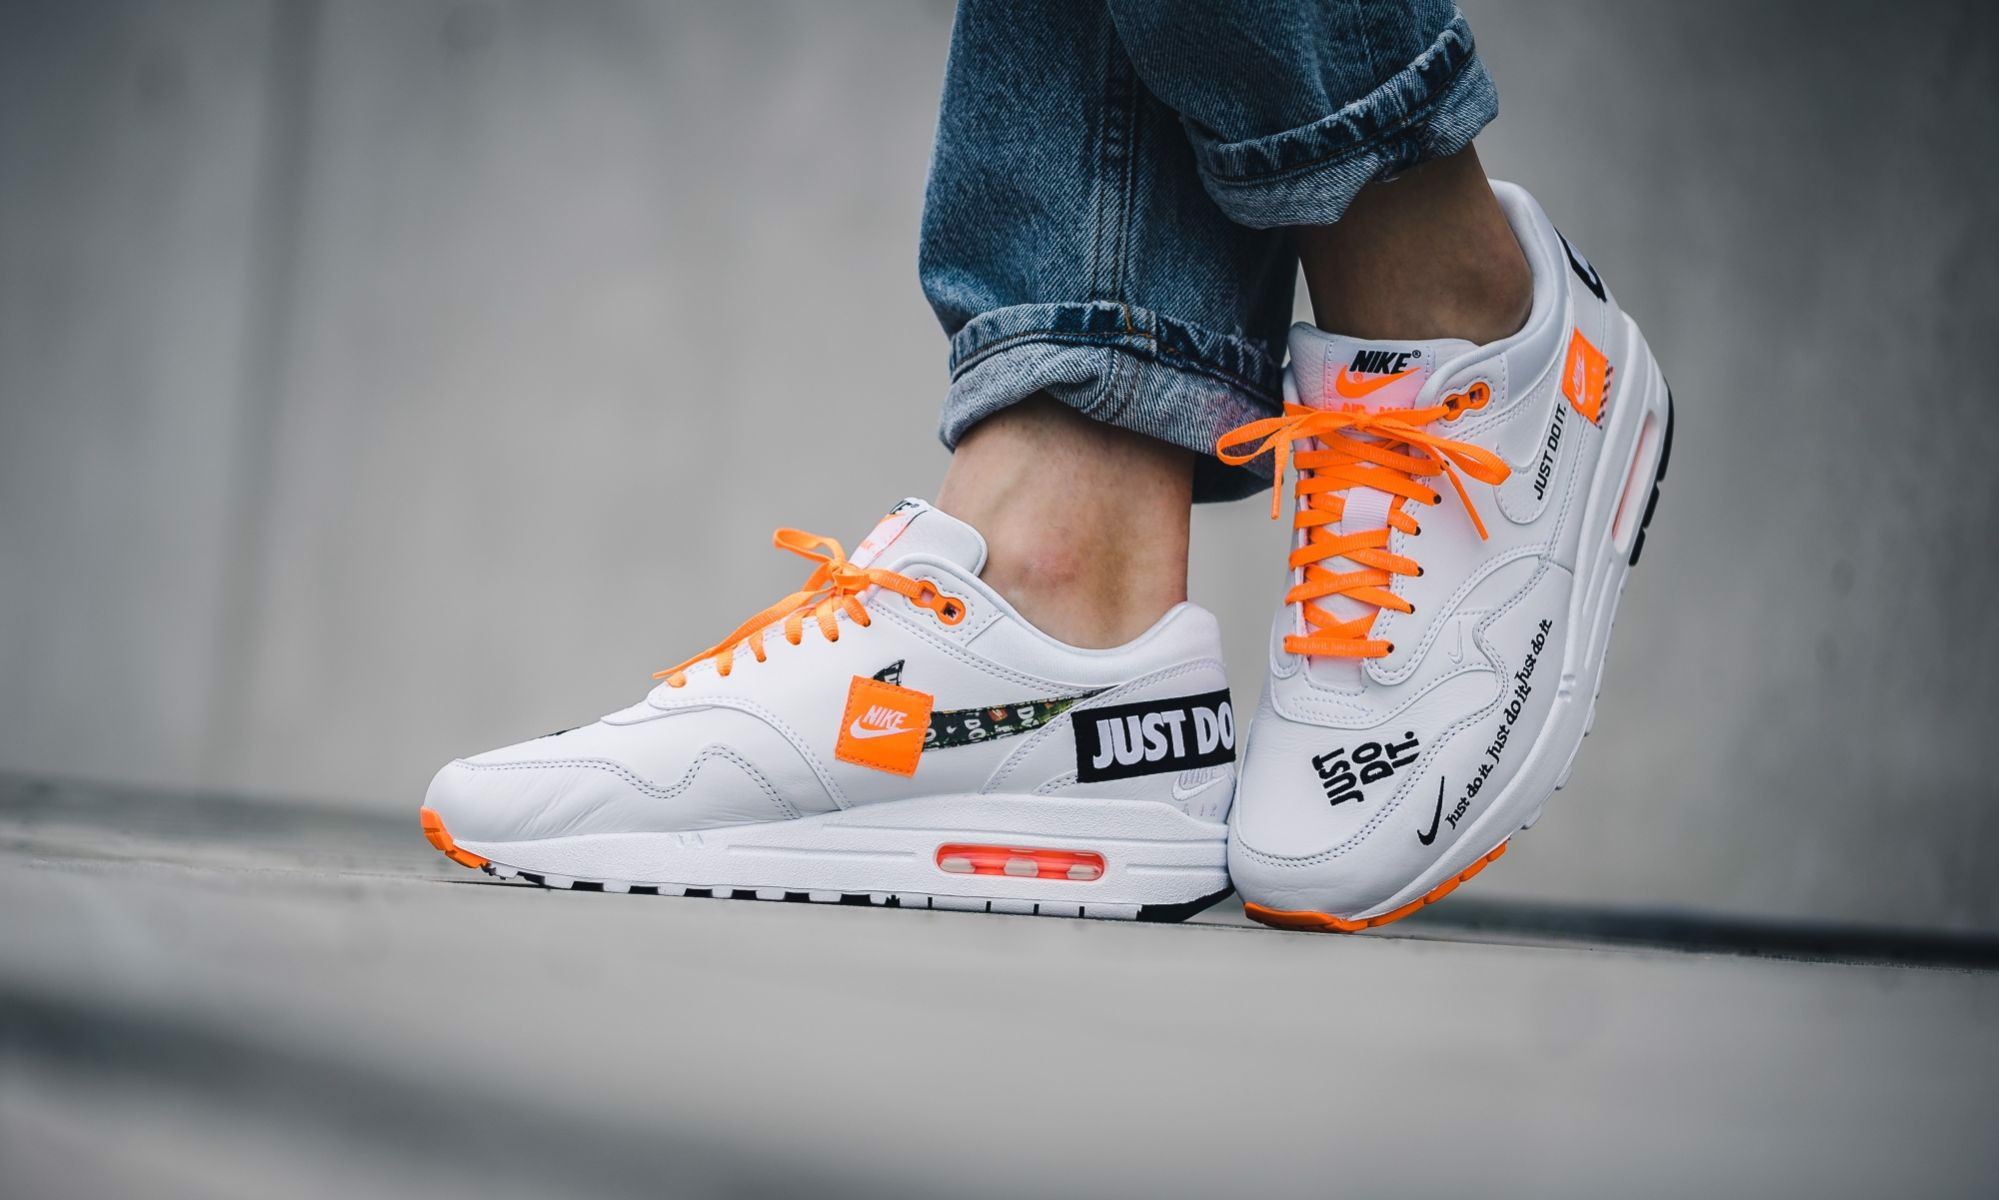 Nike WMNS Air Max 1 Lux 'Just Do It' 917691-100